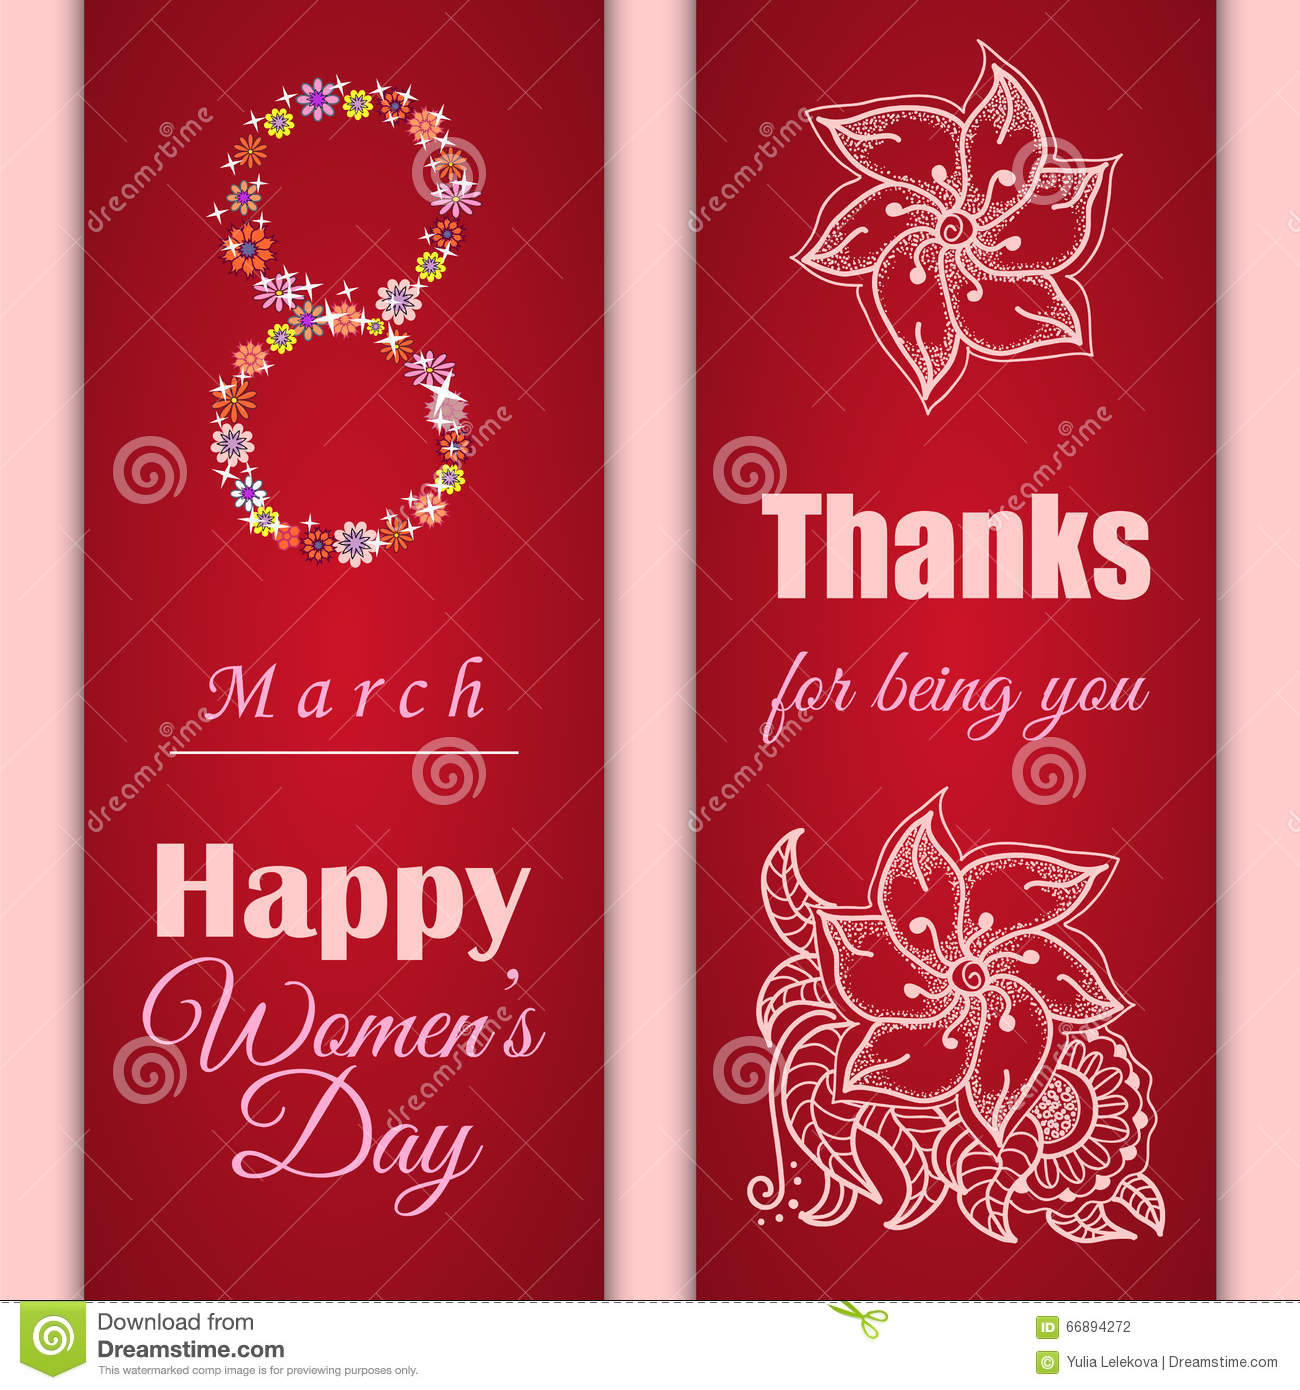 Set Of Vector Greeting Cards Or Banners For 8 March Happy Womens